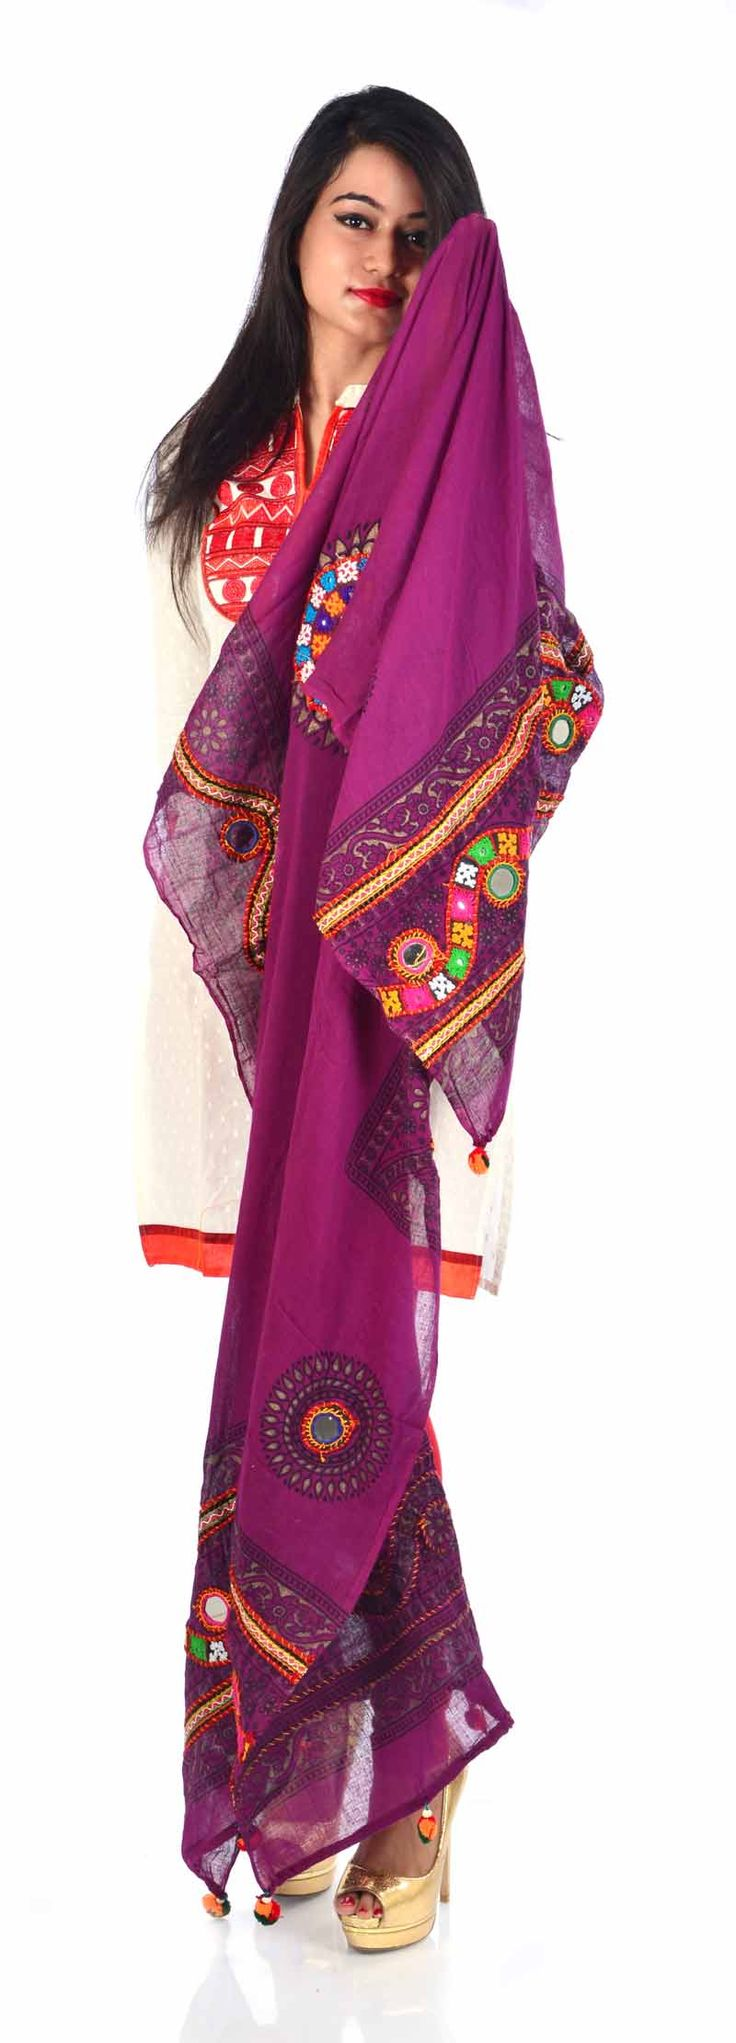 Styleincraft Handwork  cotton Magenta color designer Dupatta. This combination is unique mix and match embroidery work and block printing. you can find our best collection in Dupattas. This is   Traditional work dupattas wear on  multiple dresses as multi color thread embroid #Womenswallets #Pursesonline #Handmadeitems #Styleincraft